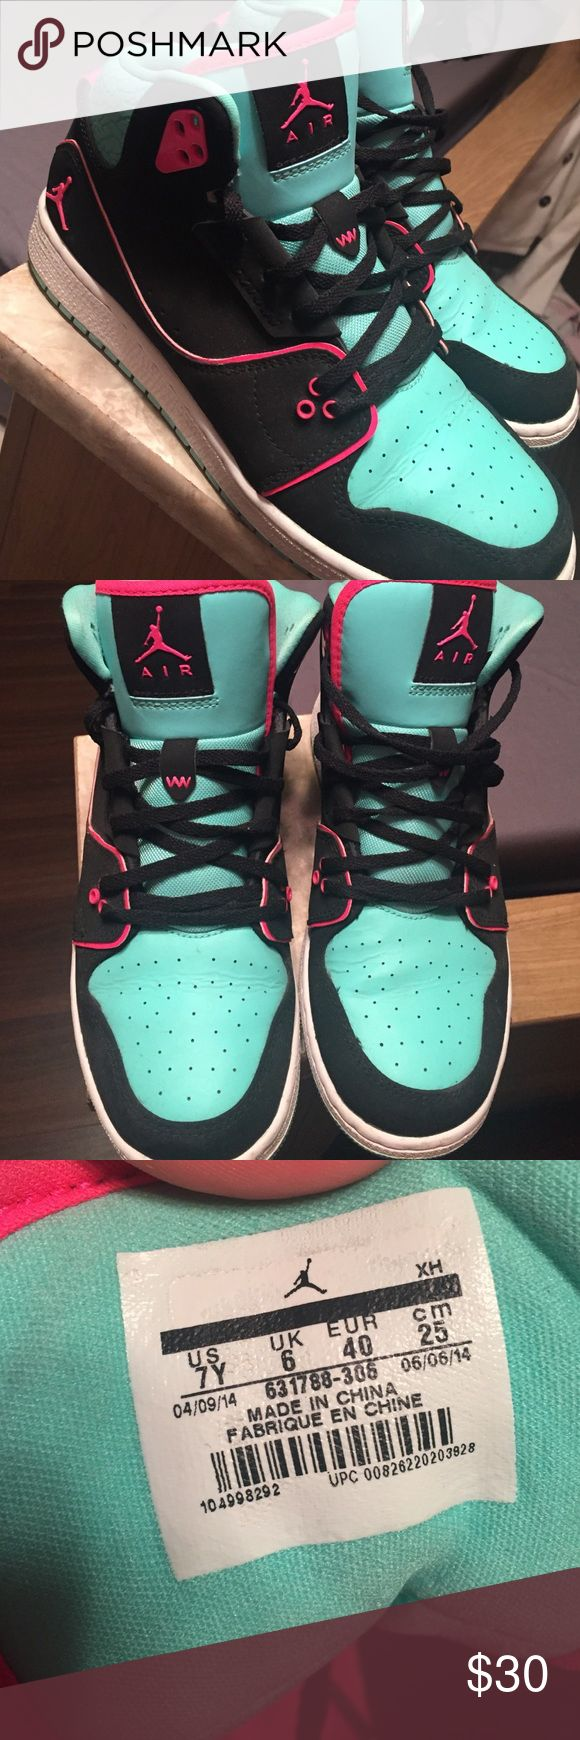 Kids Jordan's Teal, pink, & black Jordan's. Boyfriend bought me for Christmas, did not fit my feet well so only wore a few times to make him happy! Jordan Shoes Sneakers